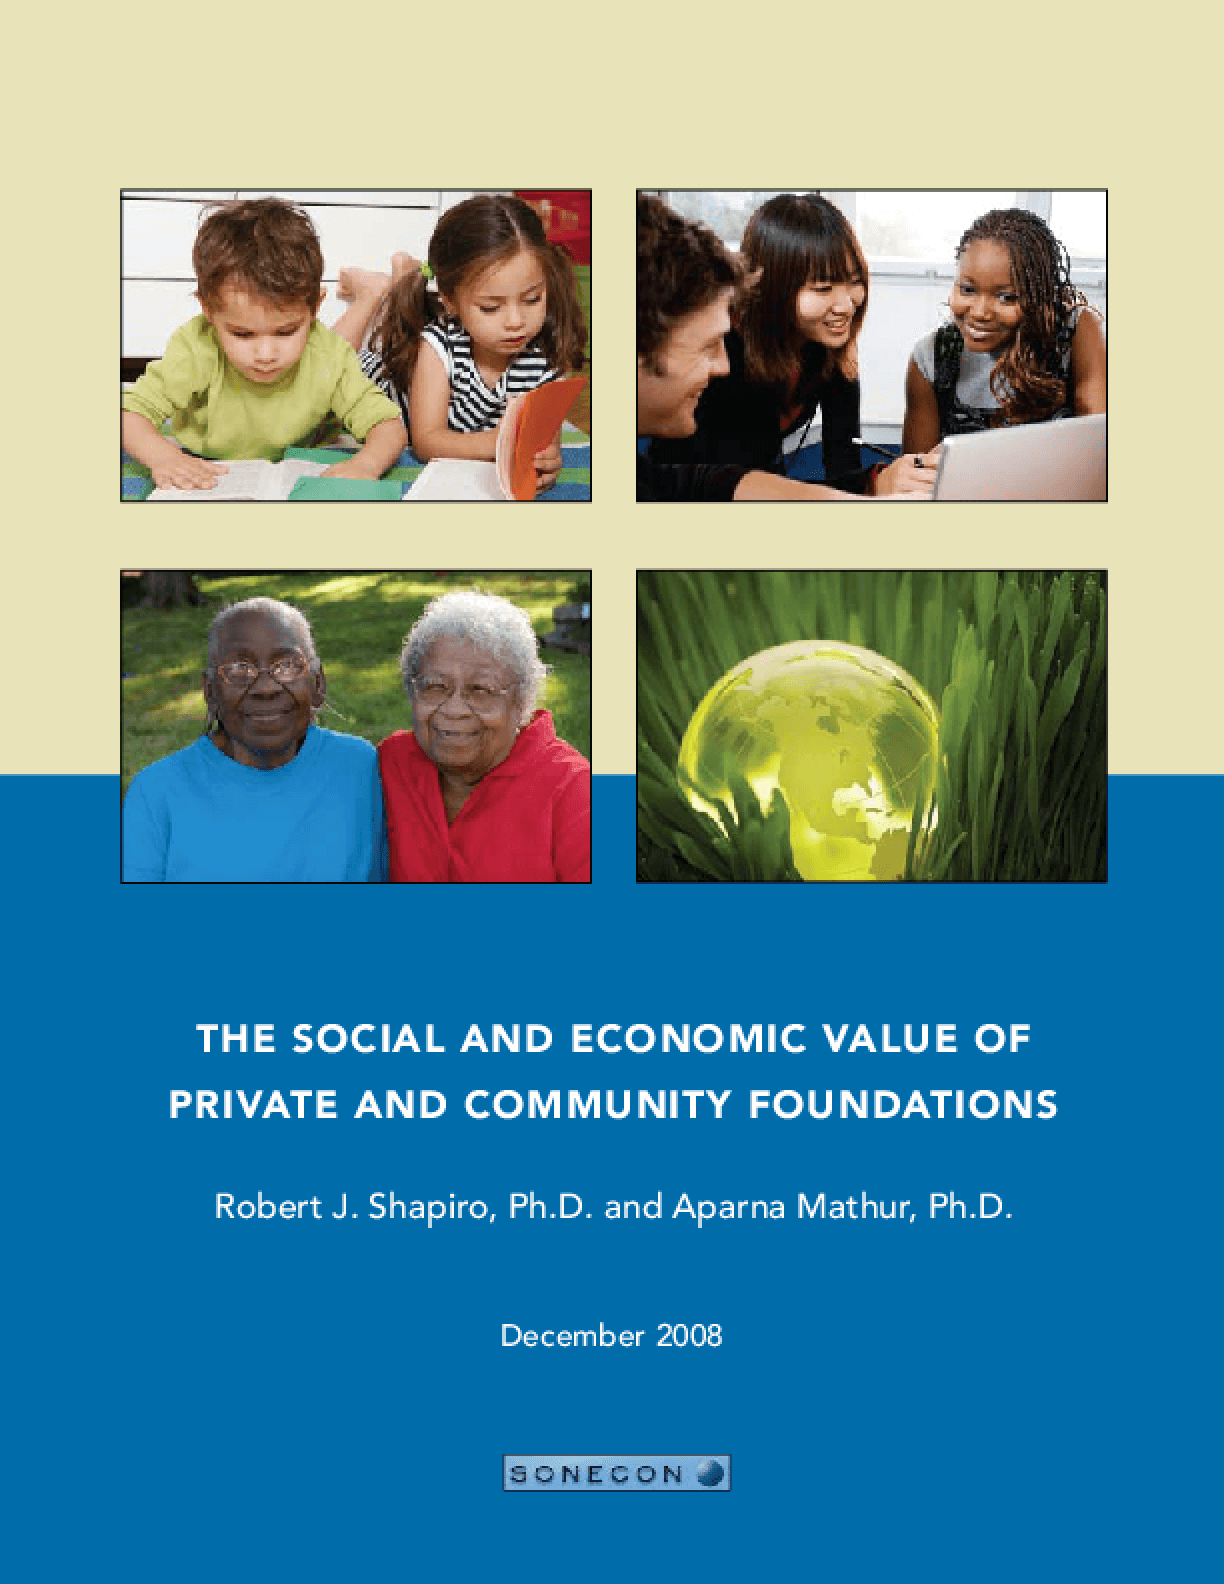 discuss the social and economic impact